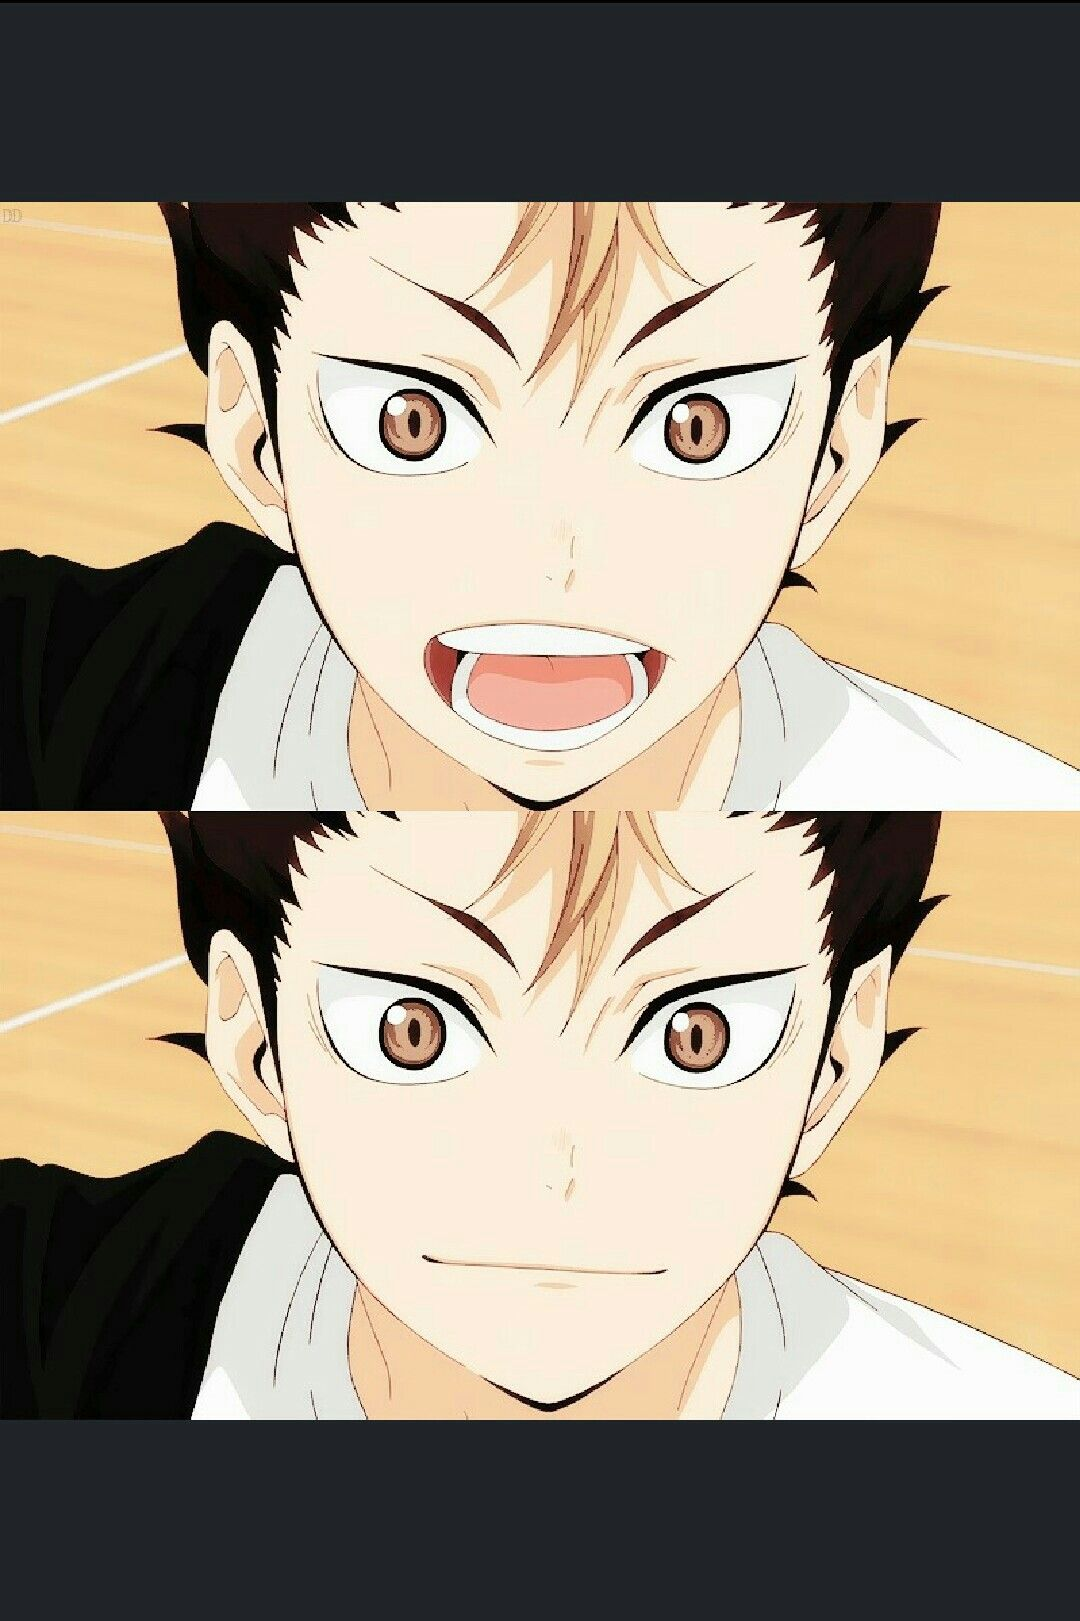 Pin by Aleya on Haikyū!! Haikyuu anime, Anime, Anime love